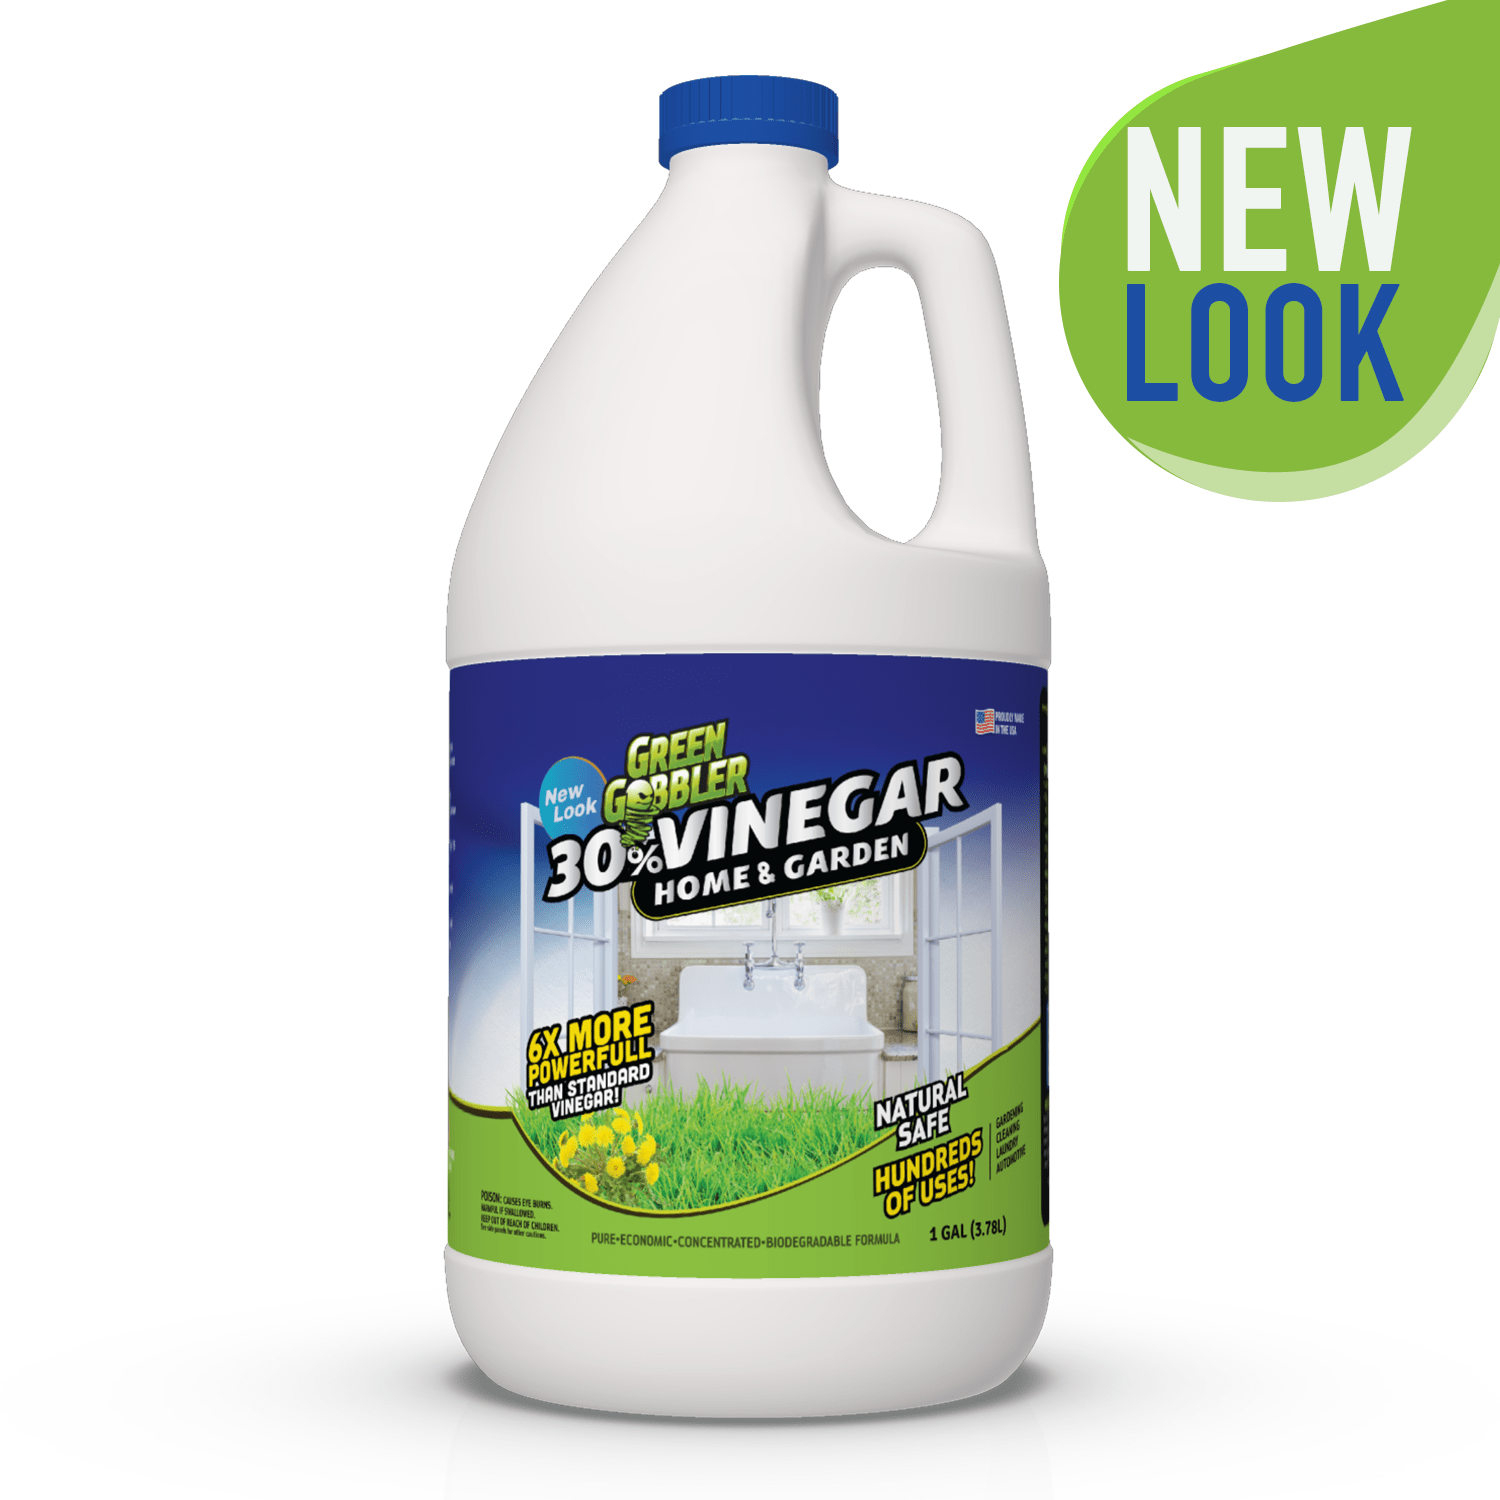 Green Gobbler 30% White Vinegar